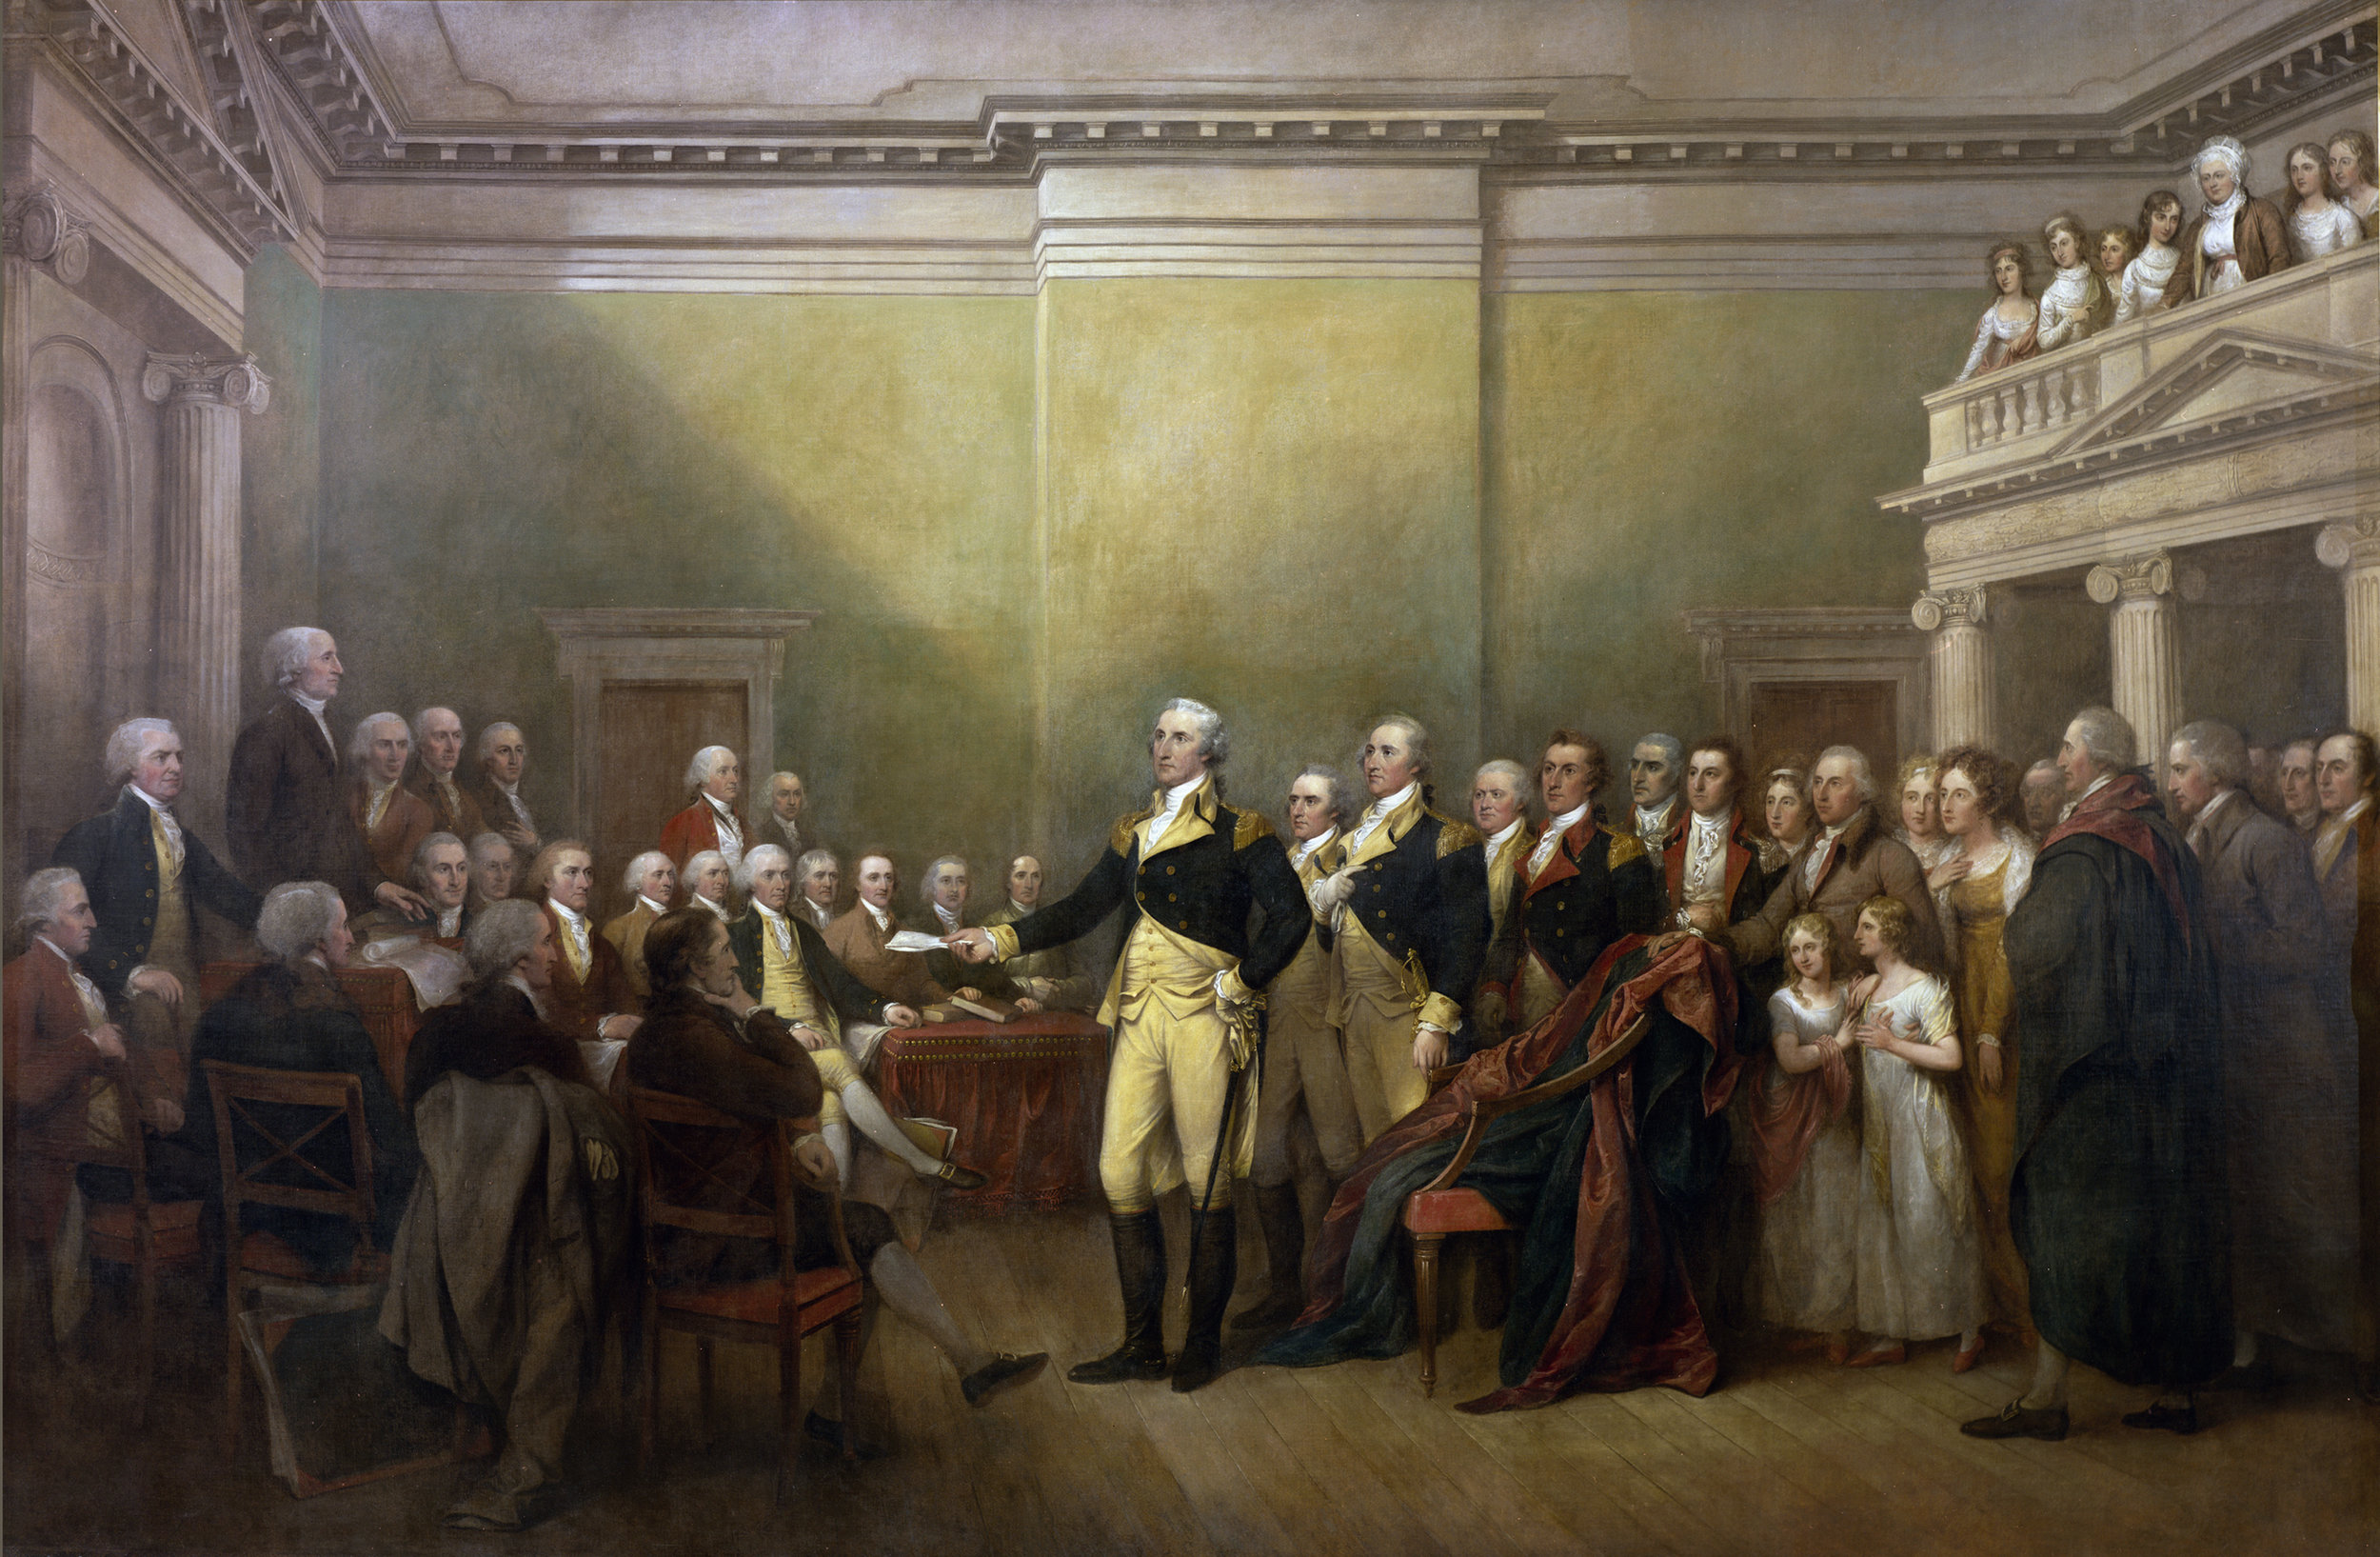 General_George_Washington_Resigning_his_Commission.jpg